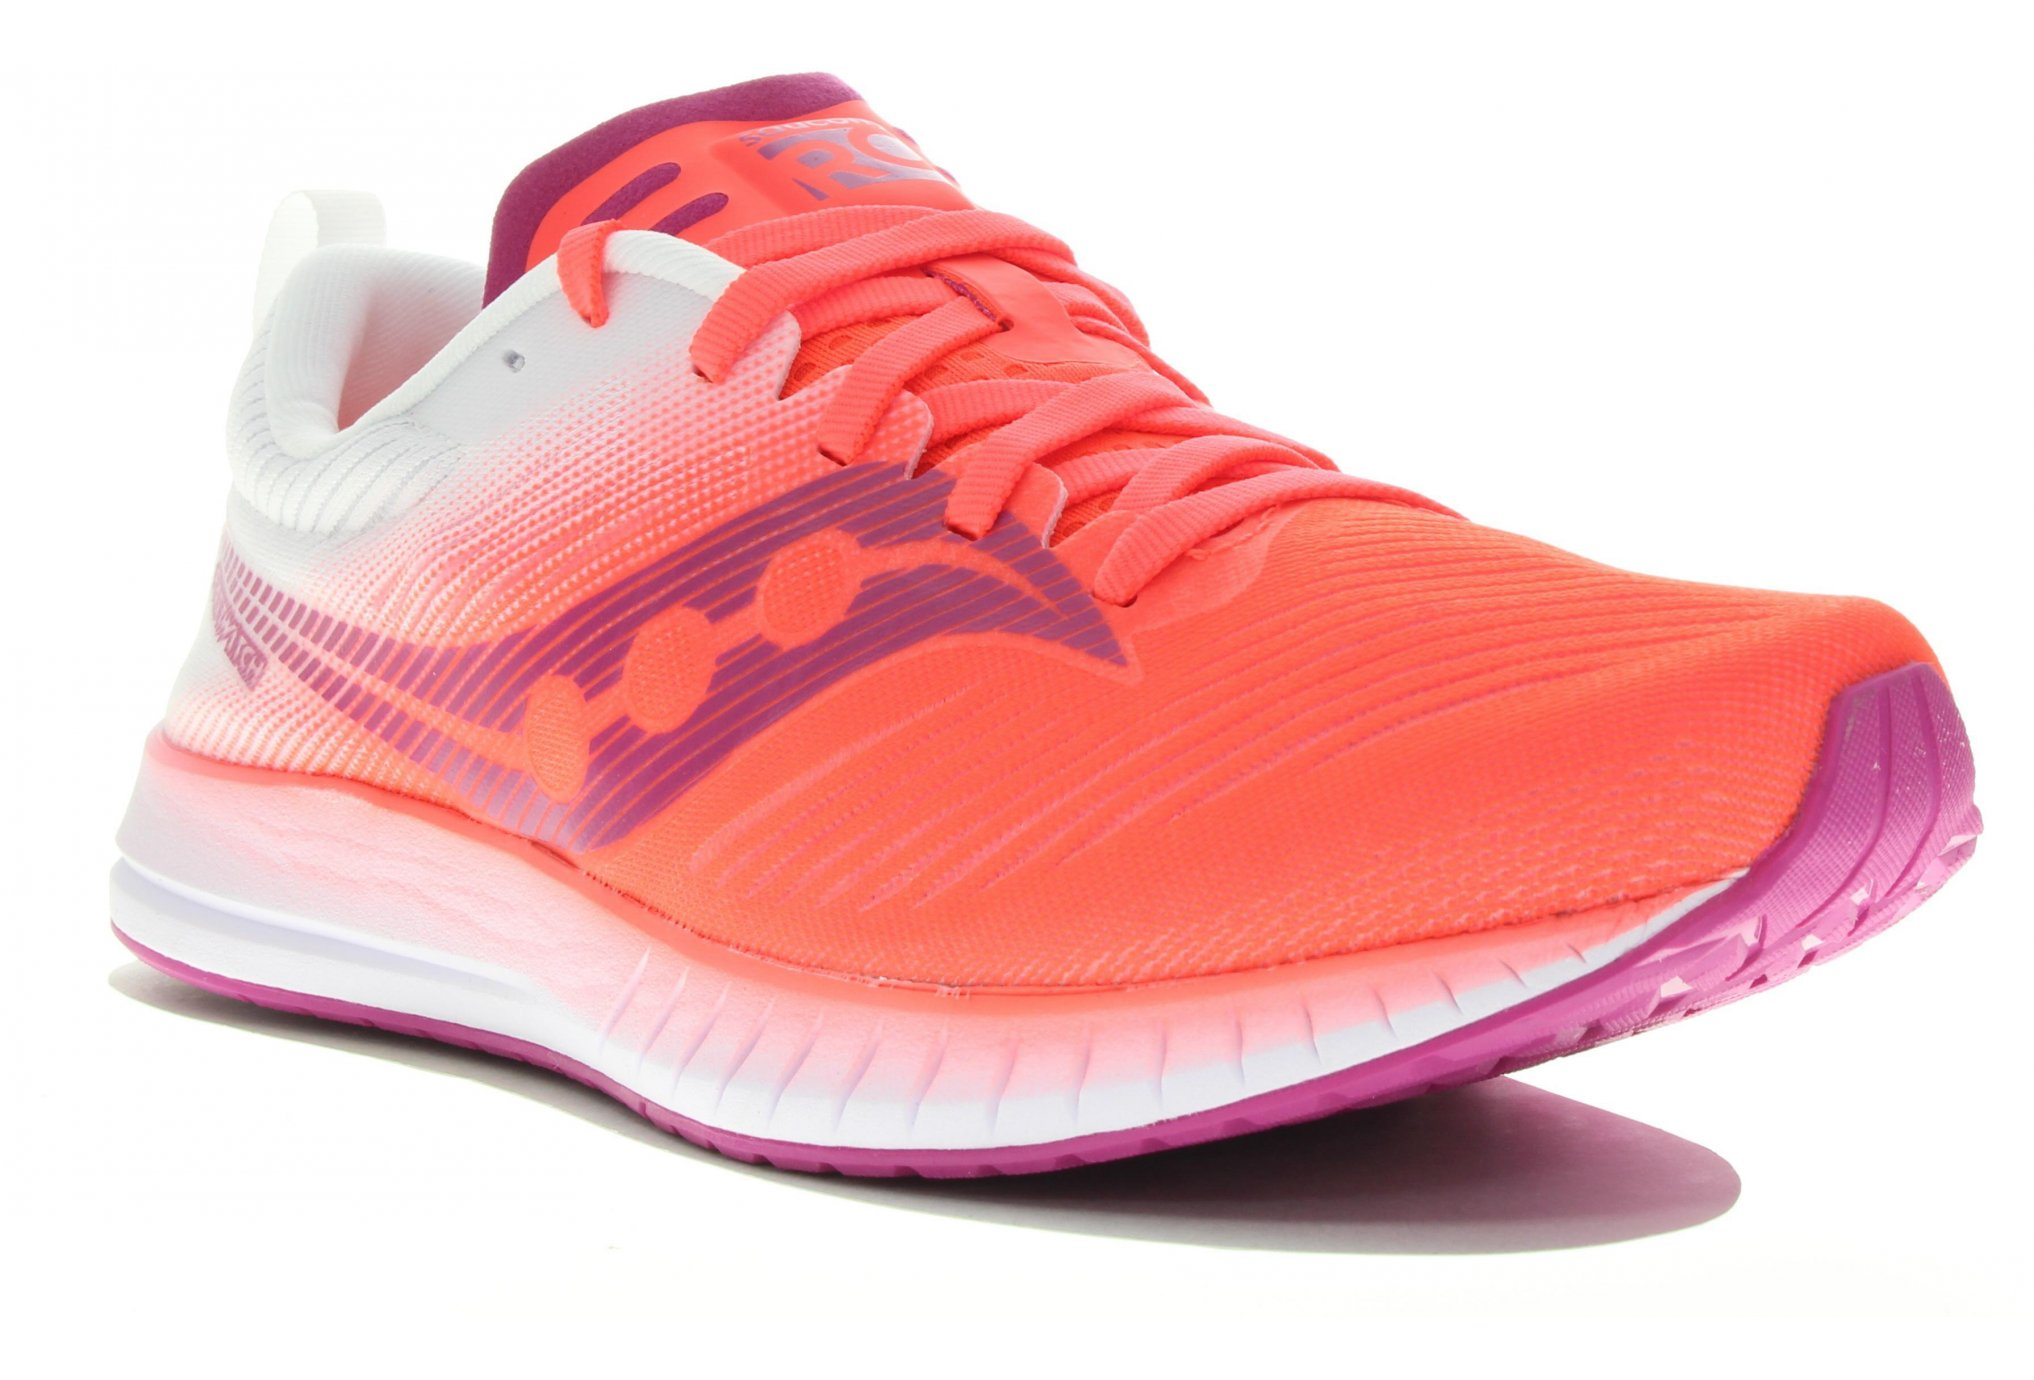 Saucony Fastwitch 9 Chaussures running femme